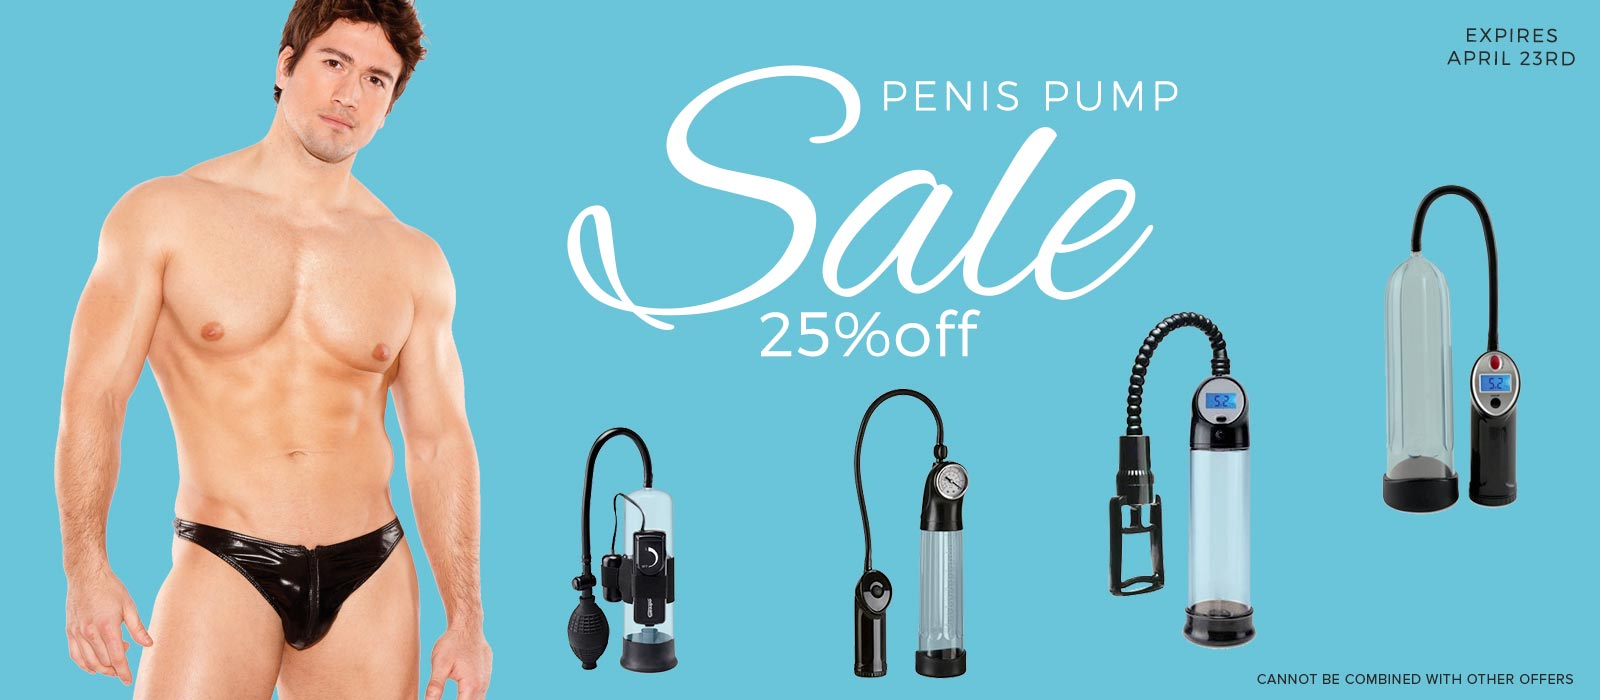 25% off penis pump sale